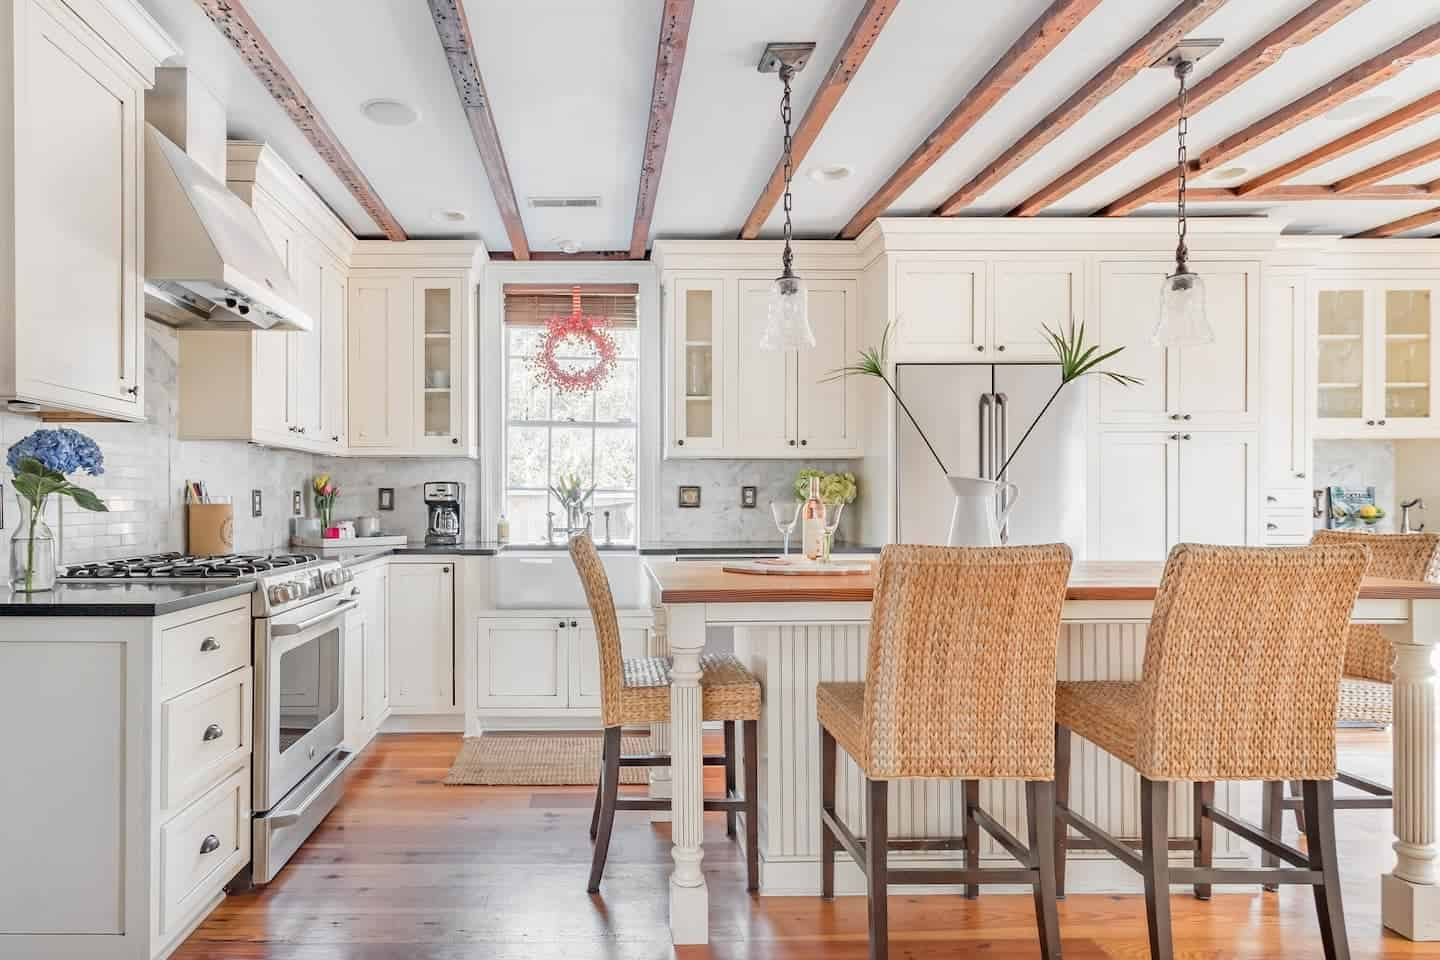 Image of Airbnb rental in Charleston